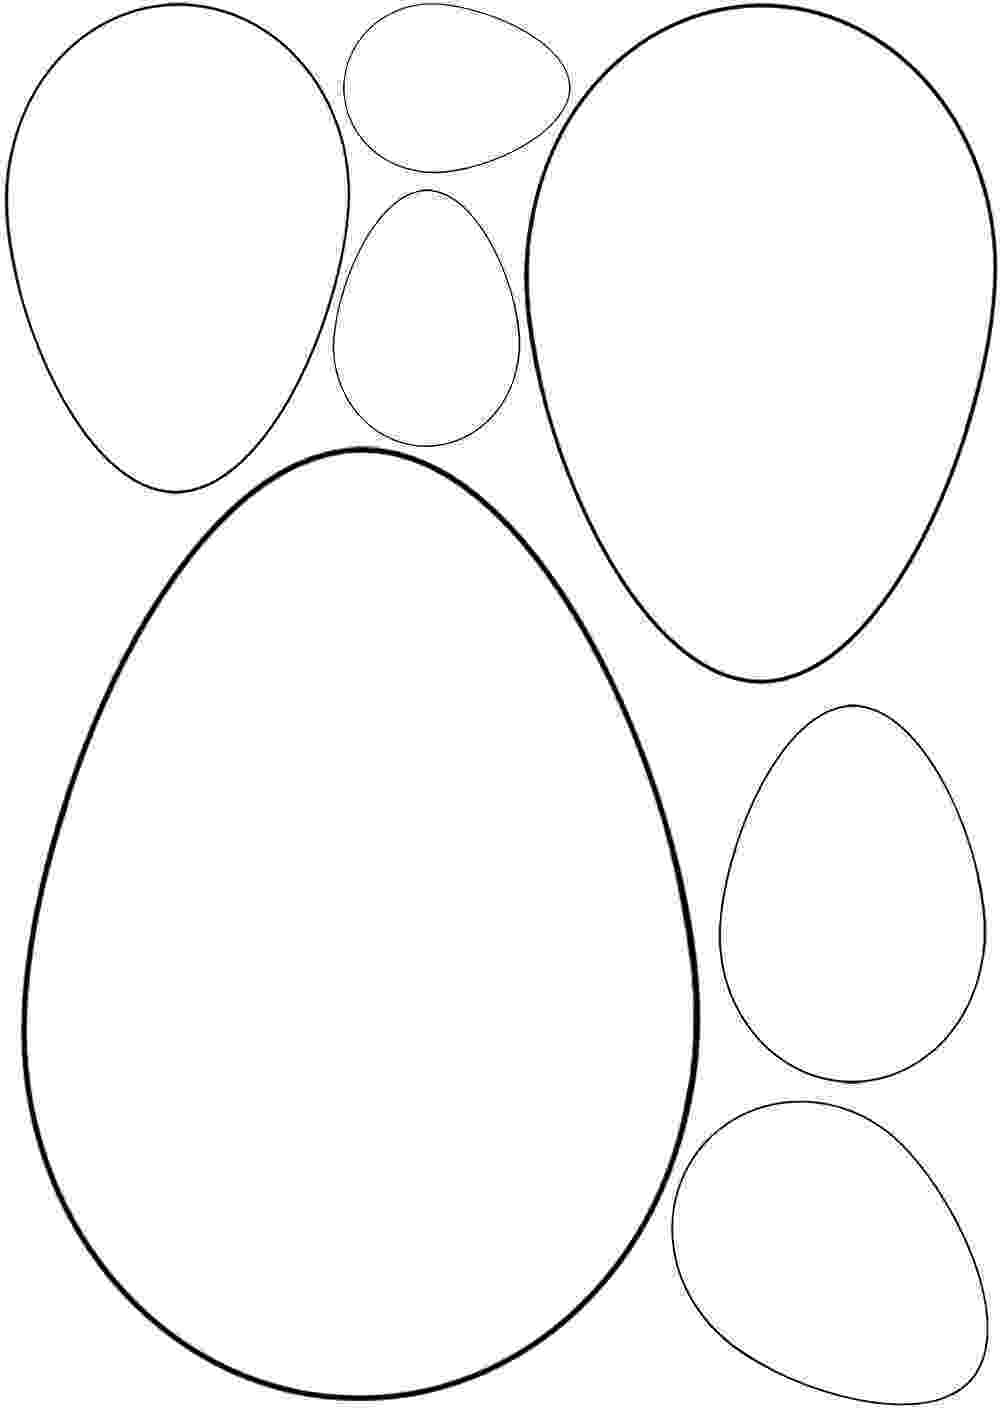 easter egg patterns easter art projects for kids ken bromley art supplies easter egg patterns